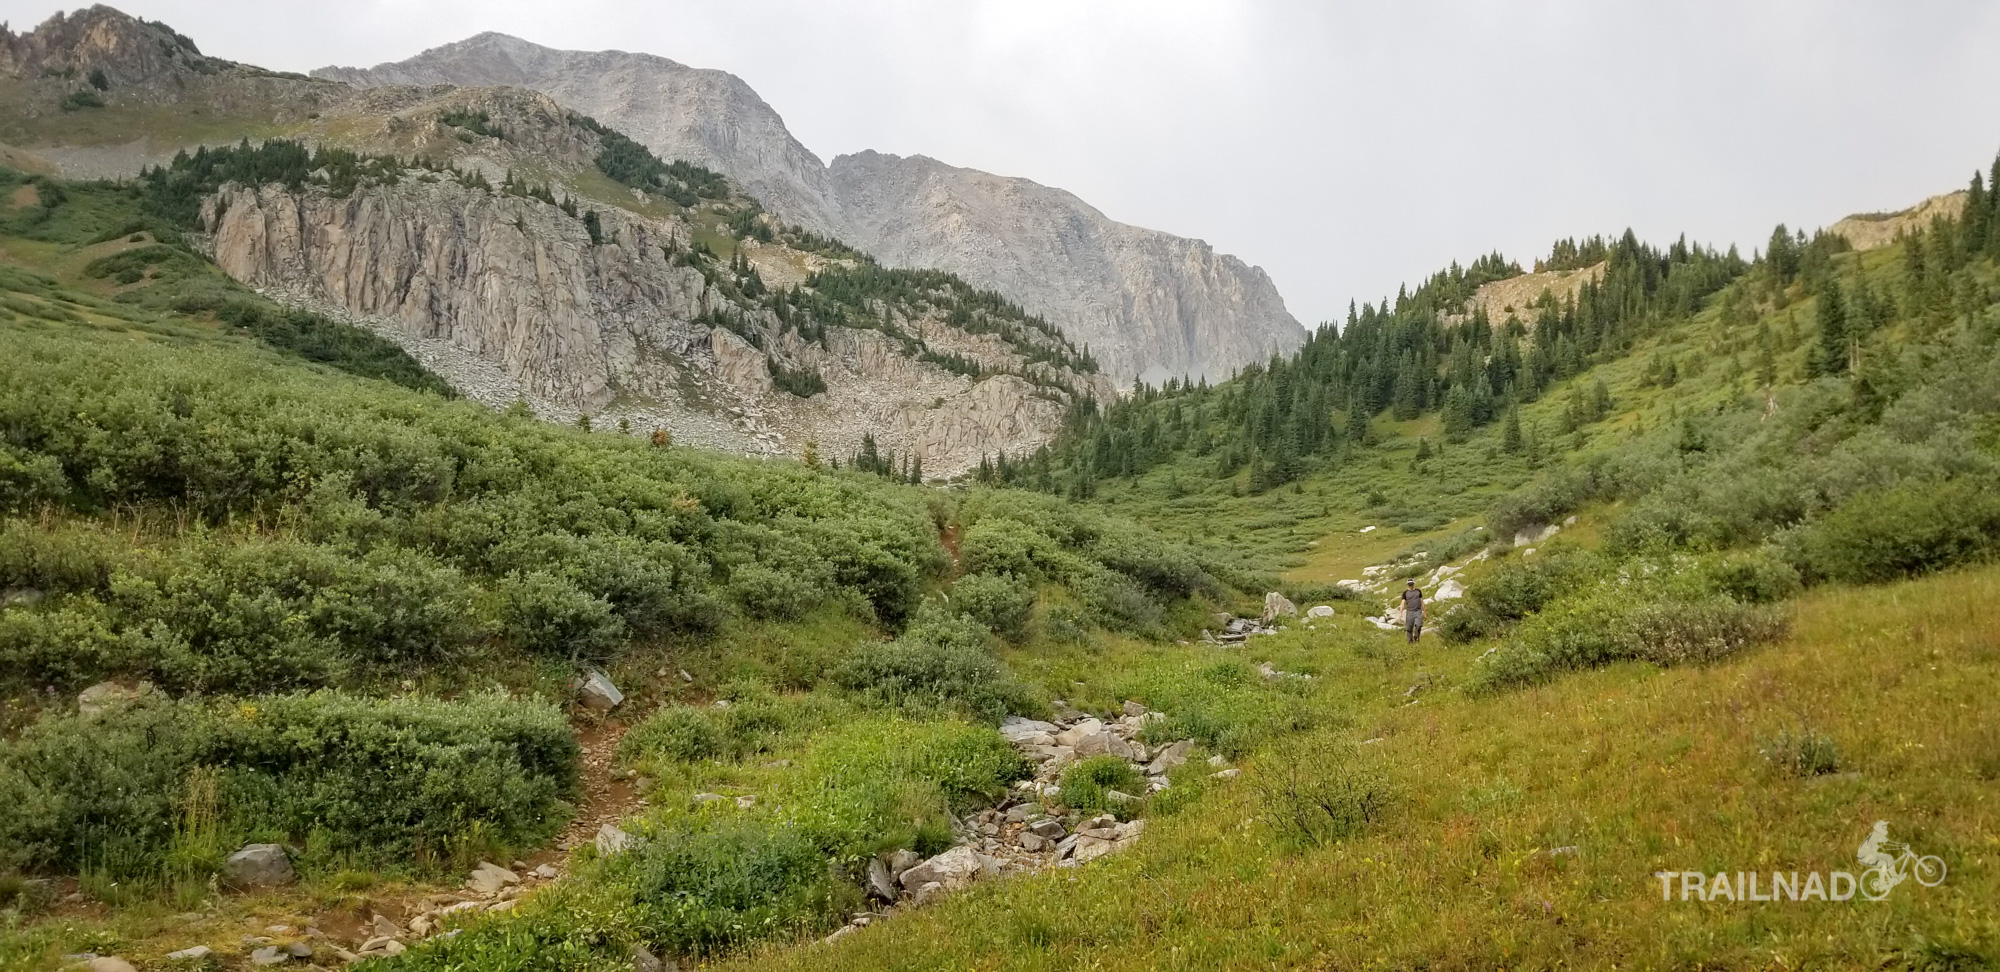 Second night on Four Pass Loop